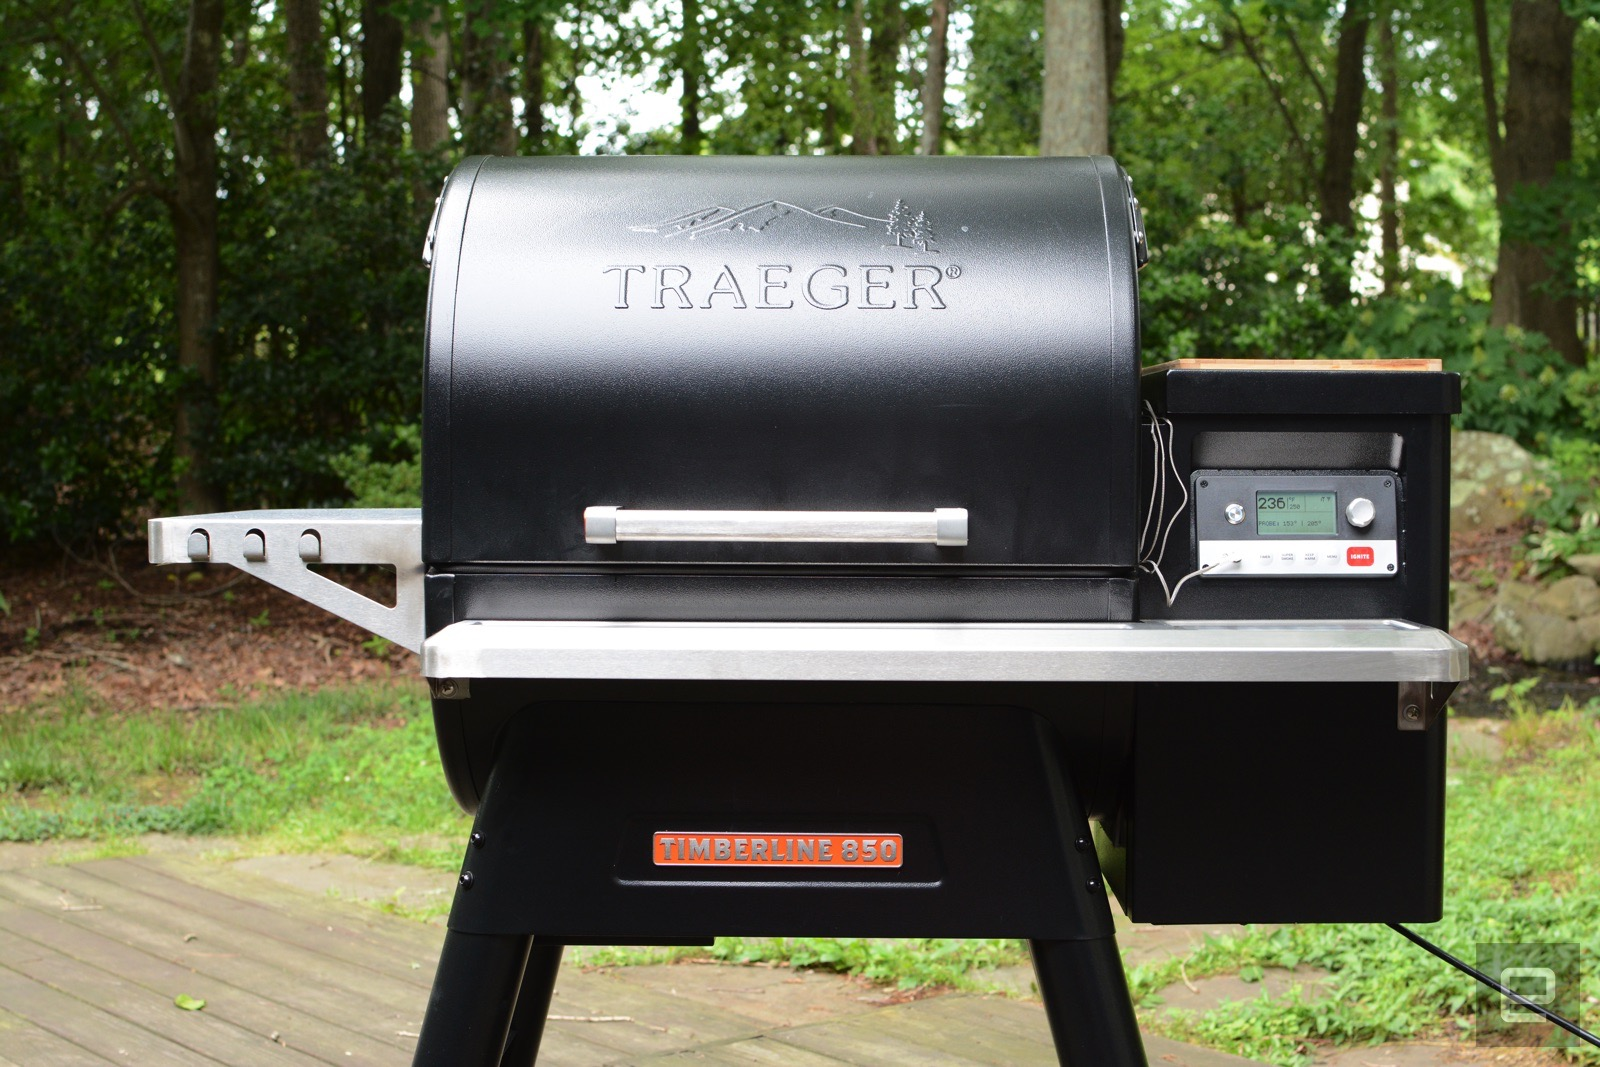 Traeger Timberline 850 Review Bbq Goes High Tech Engadget